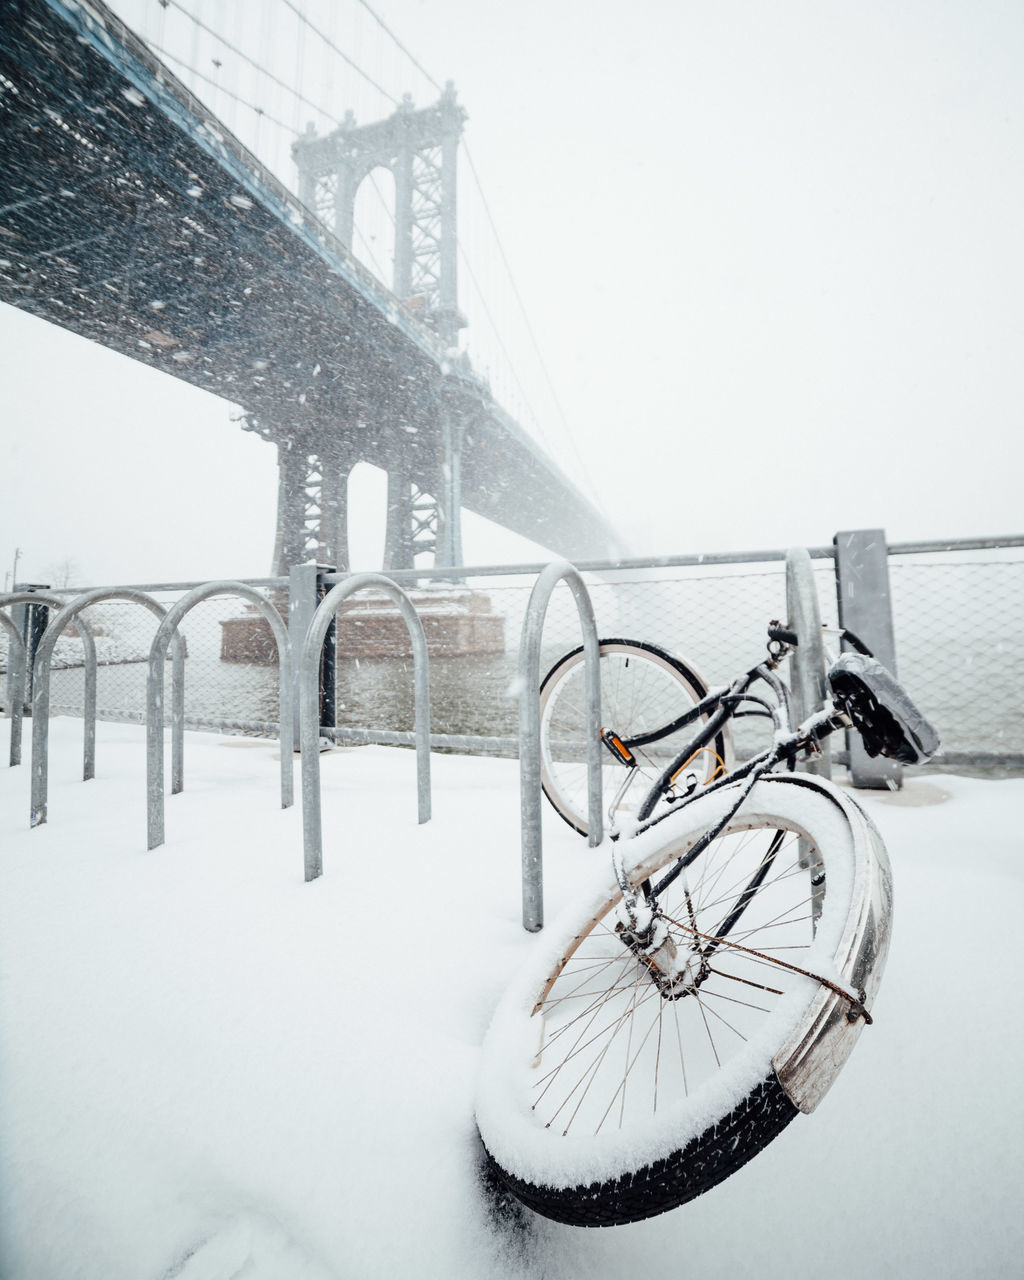 transportation, winter, snow, cold temperature, mode of transportation, architecture, bicycle, nature, built structure, bridge, day, bridge - man made structure, land vehicle, connection, no people, sky, outdoors, railing, stationary, snowing, wheel